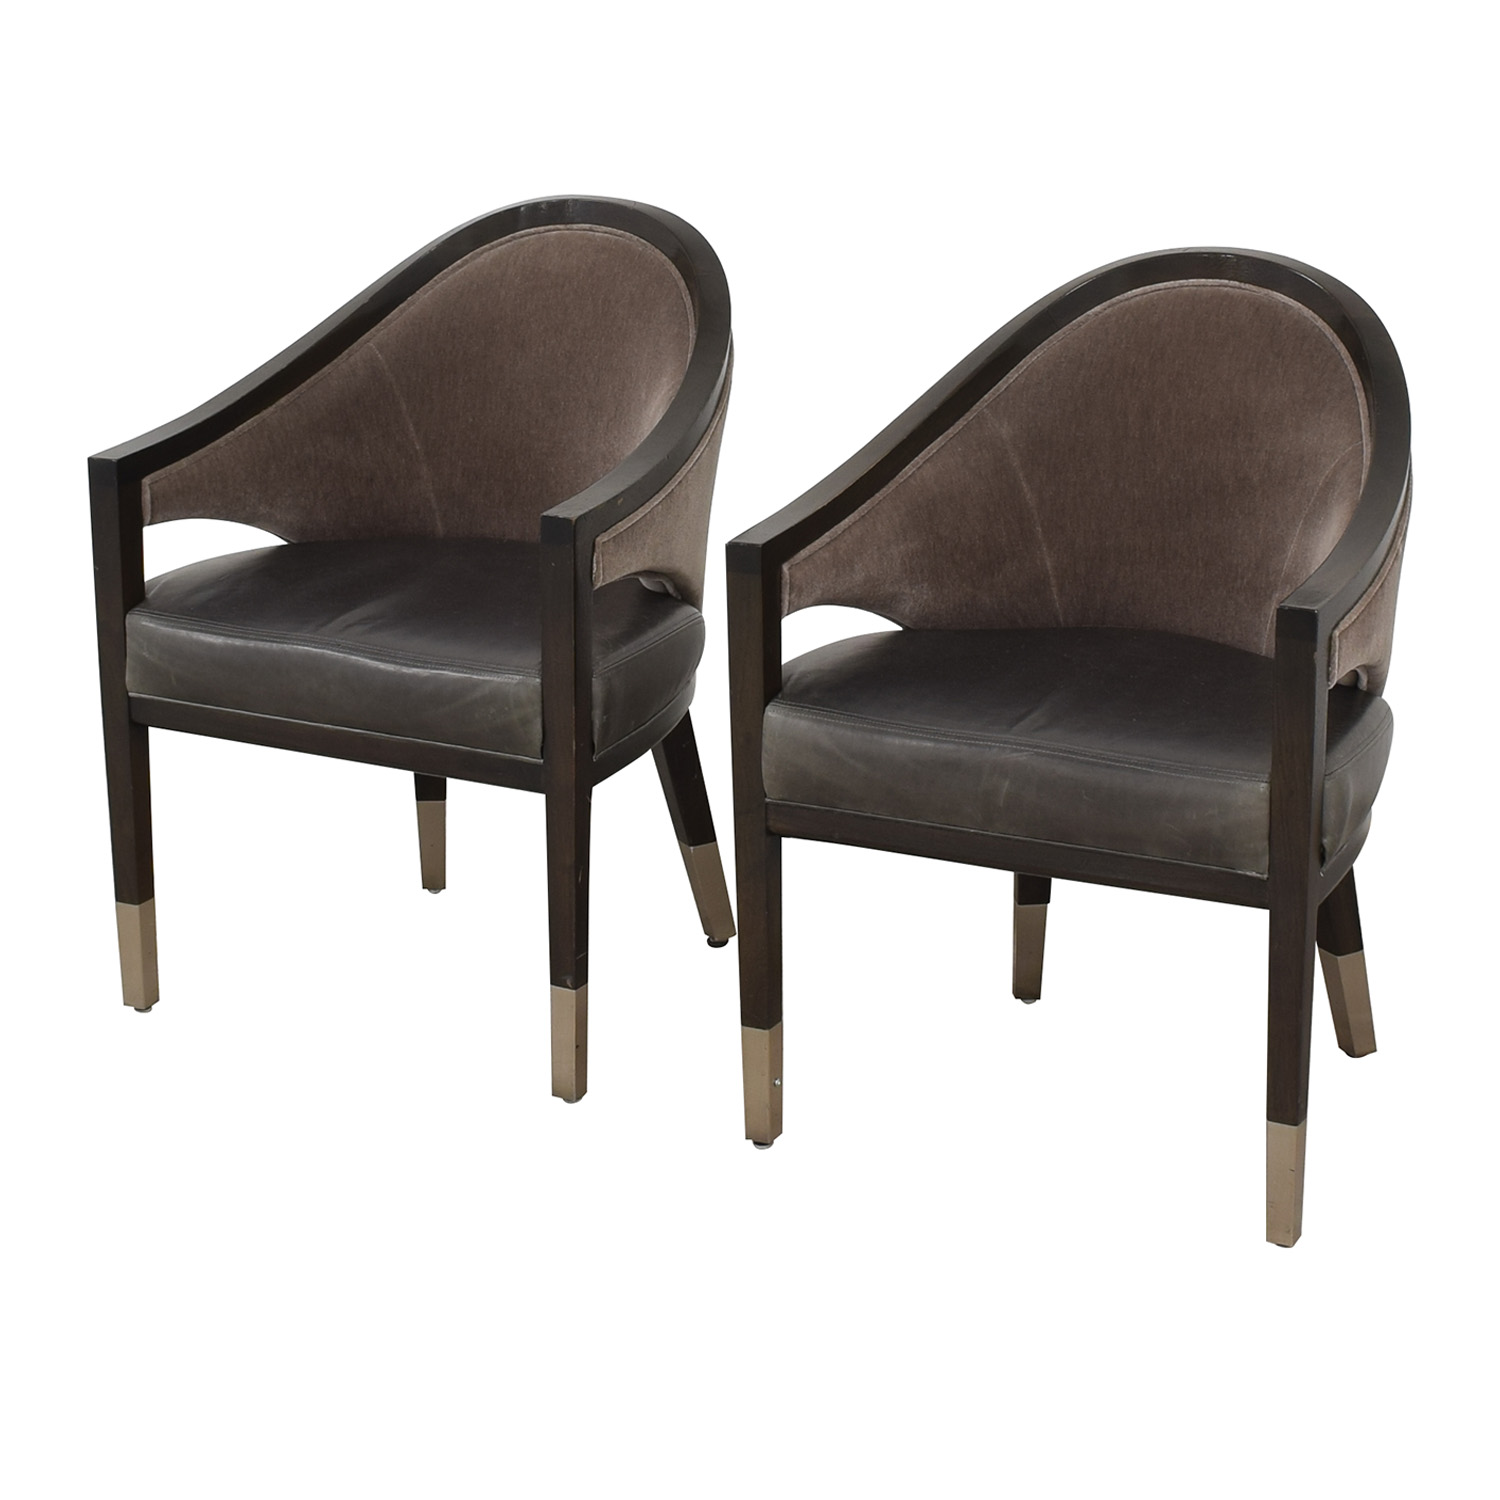 buy Allied Form Works Allied Works Eleven Madison Park Dining Room Chairs online